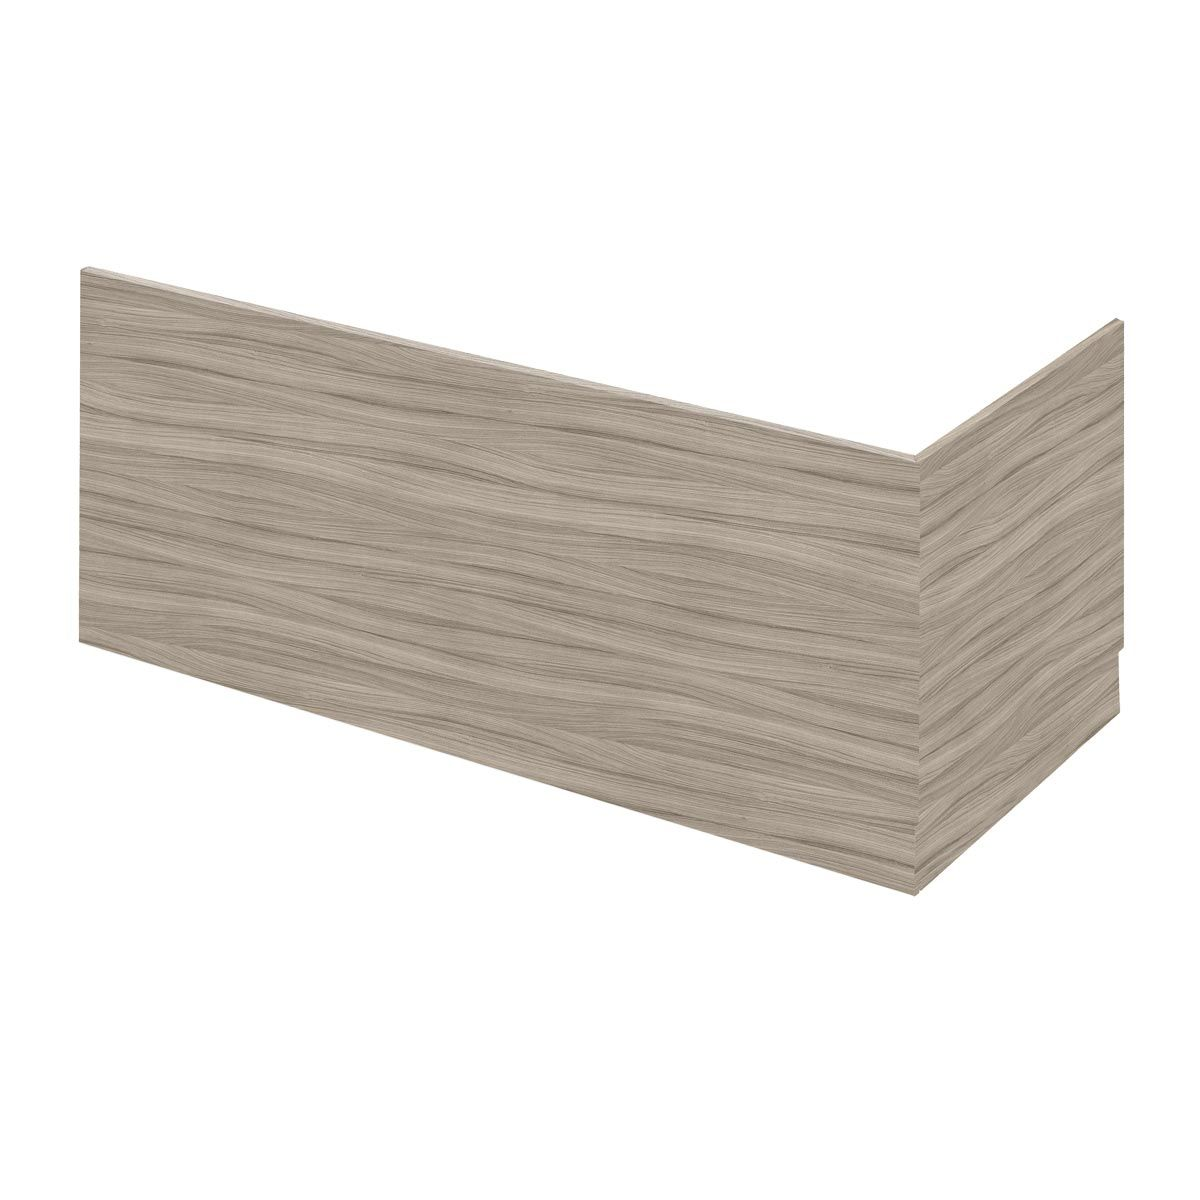 Nuie Athena Driftwood Front Panel 1800mm